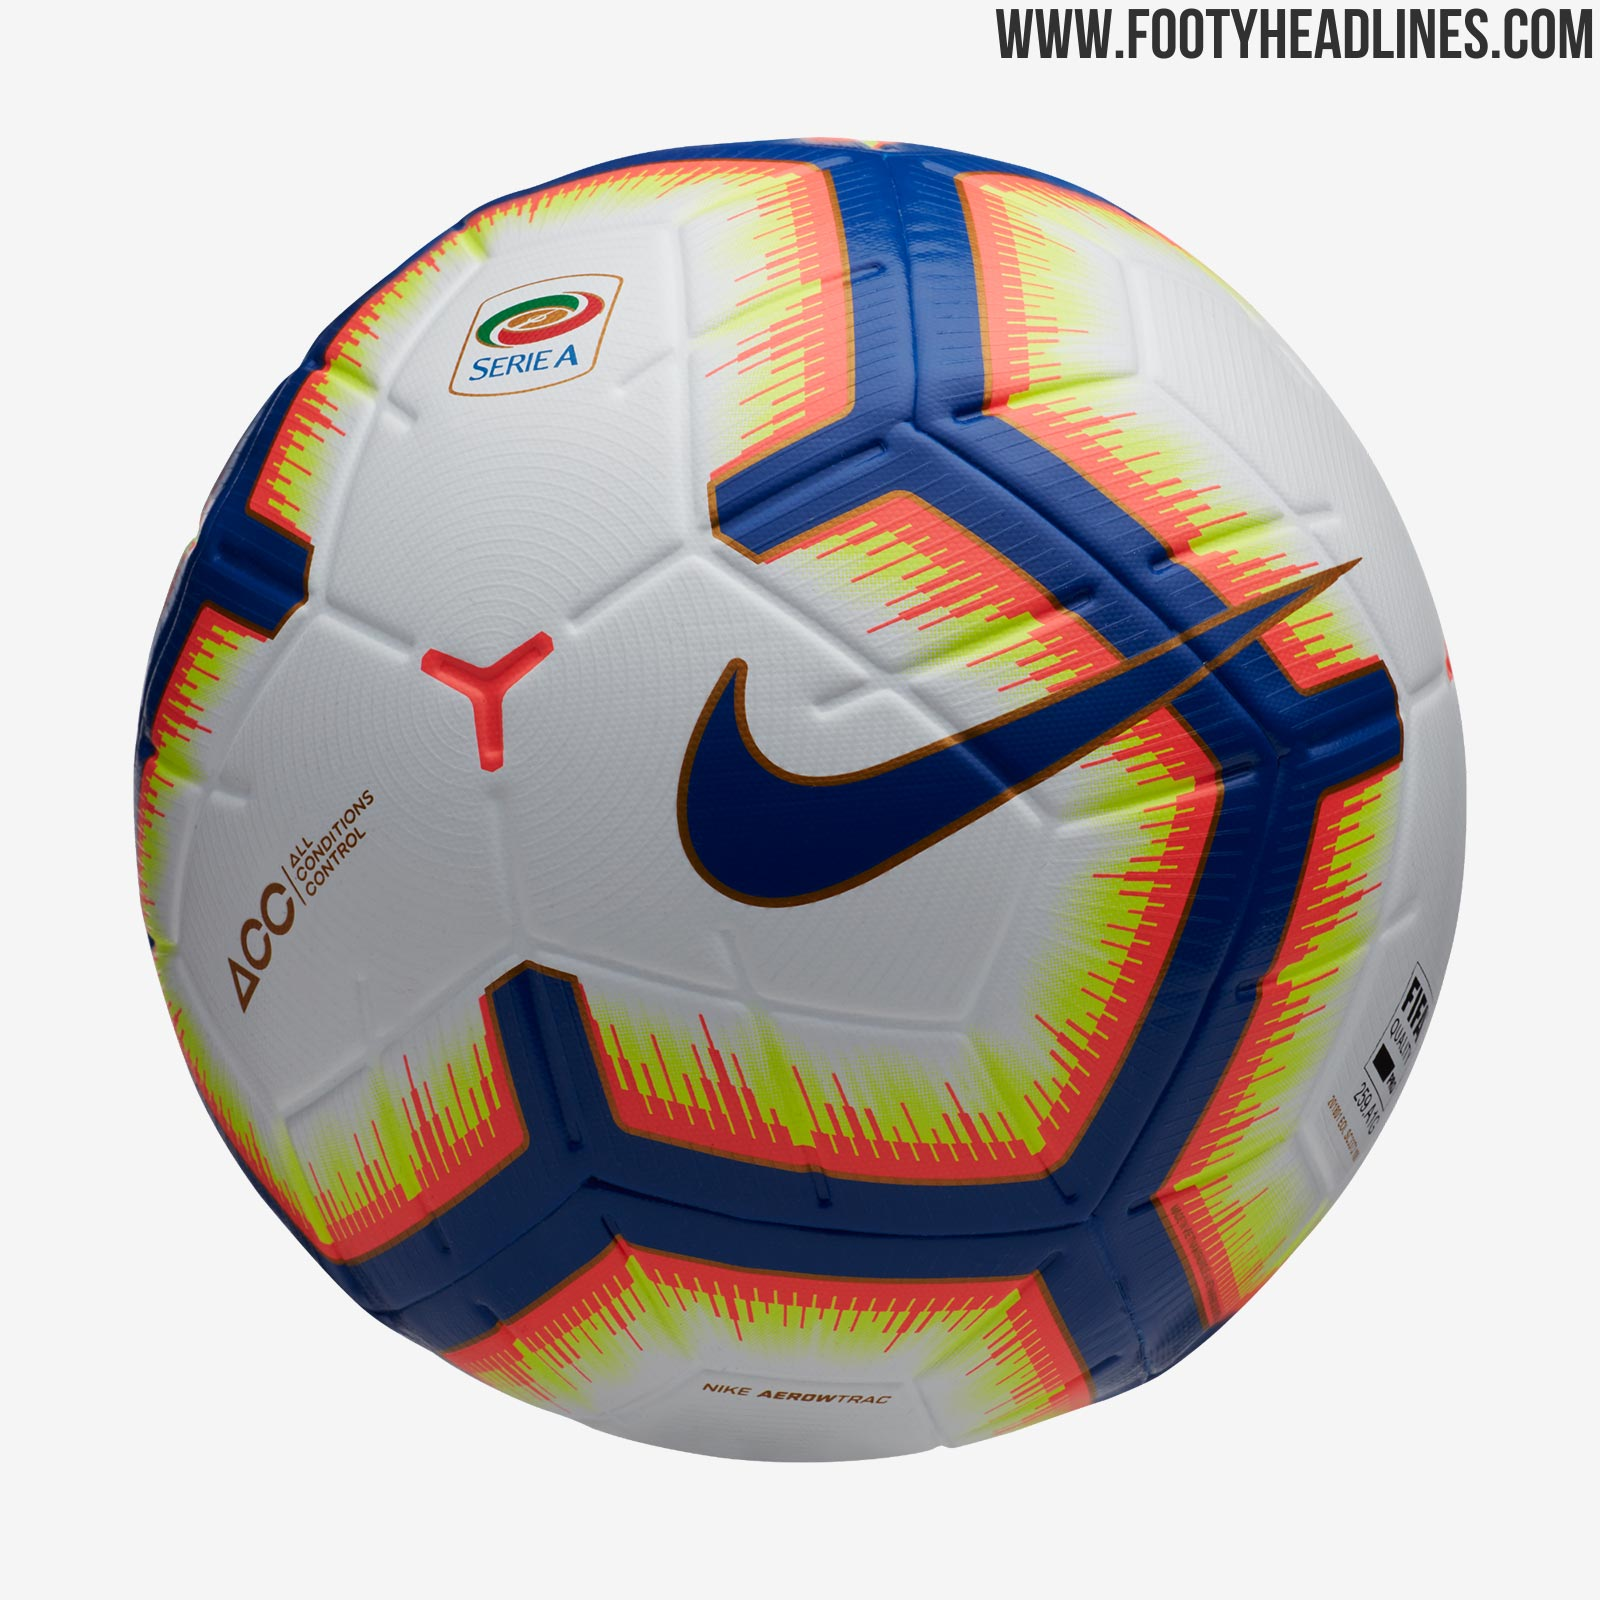 all-new-nike-merlin-serie-a-18-19-ball-2.jpg